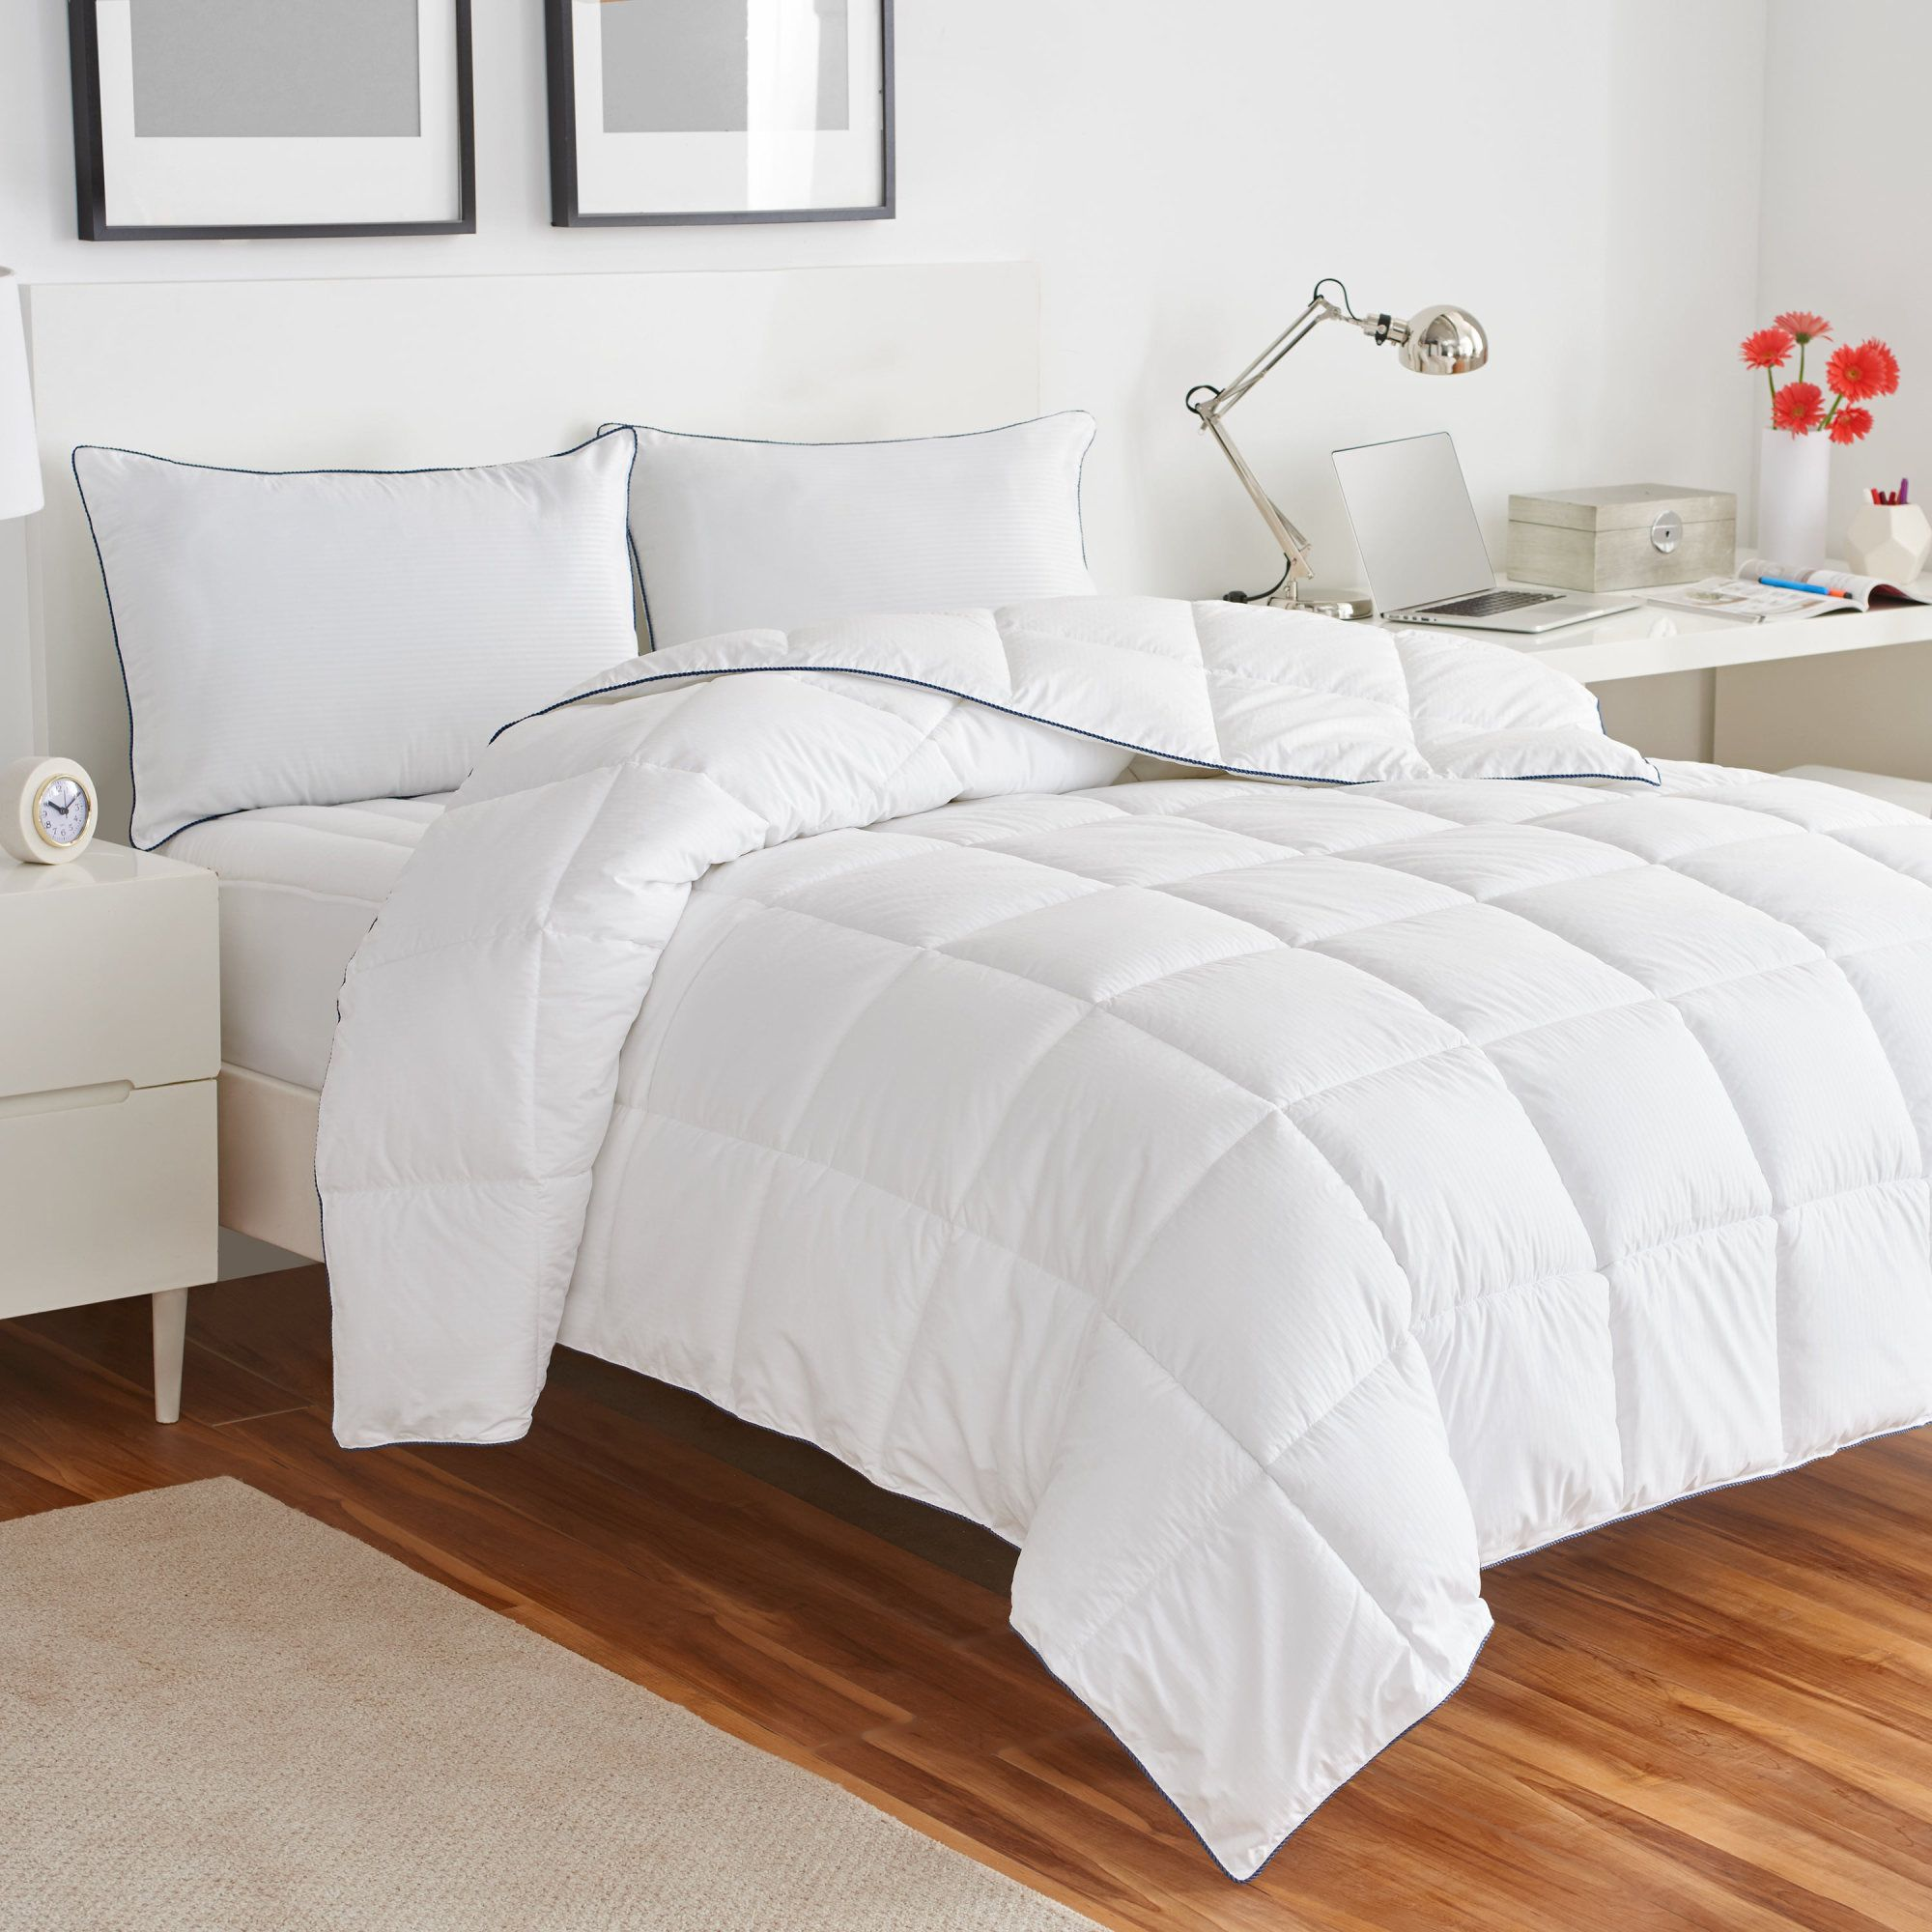 beautiful bedding linen blue pattern white image relaxing and duvets sets of duvet comforters